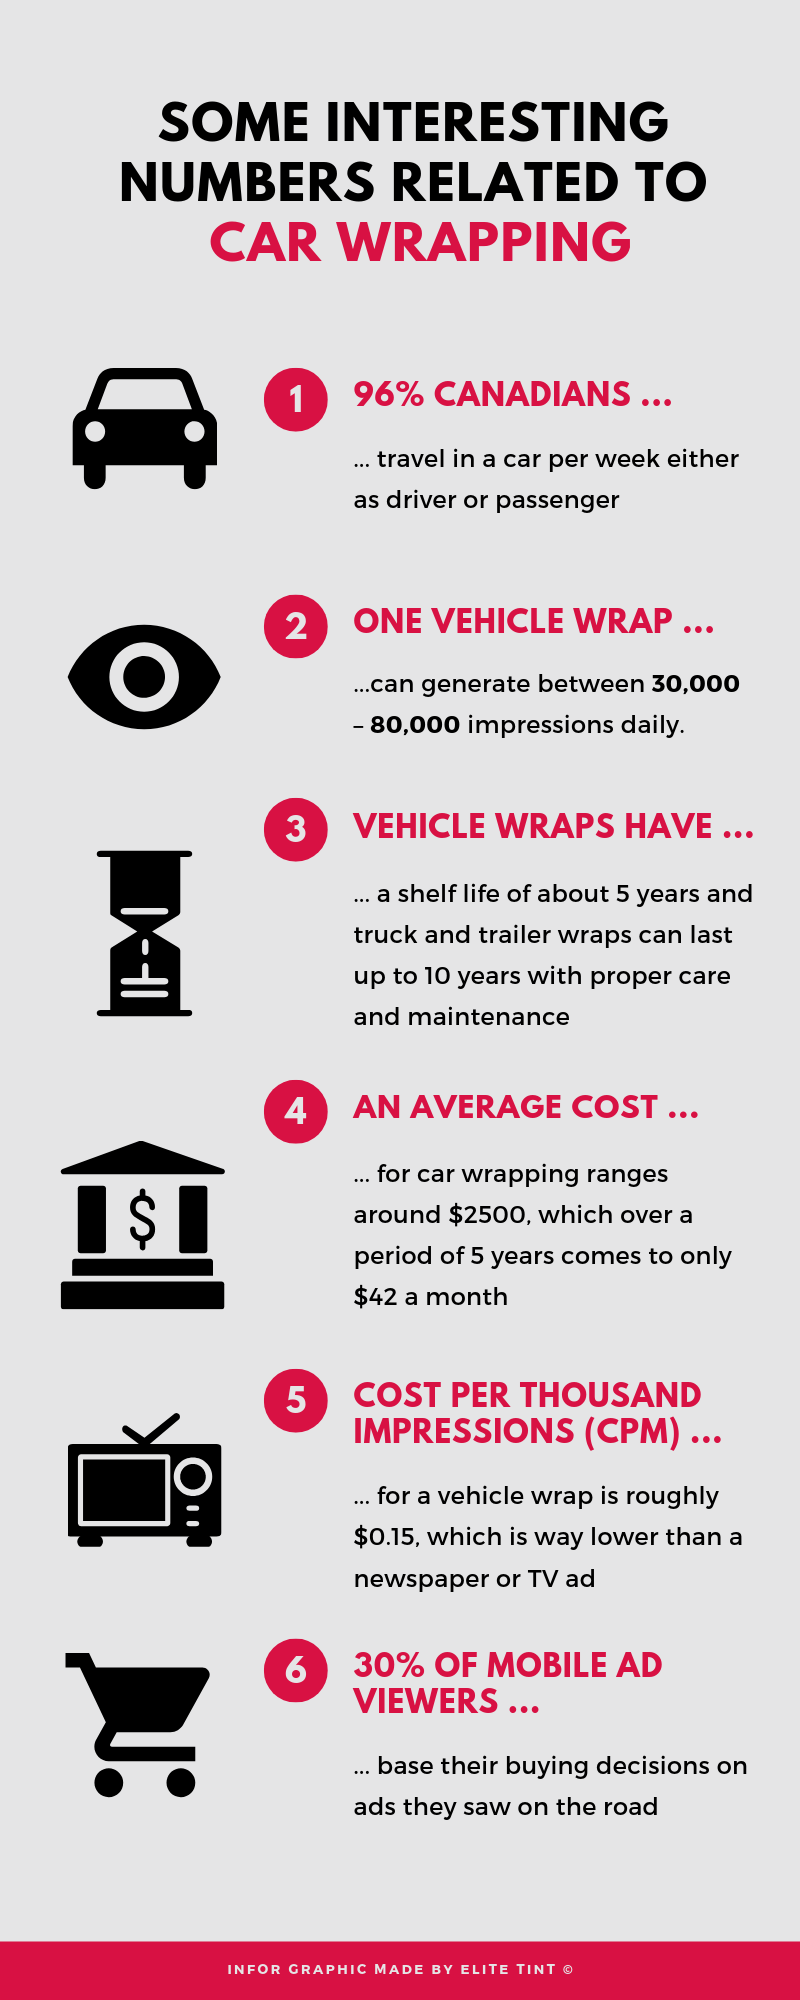 Some Interesting Numbers Related to Car Wrapping